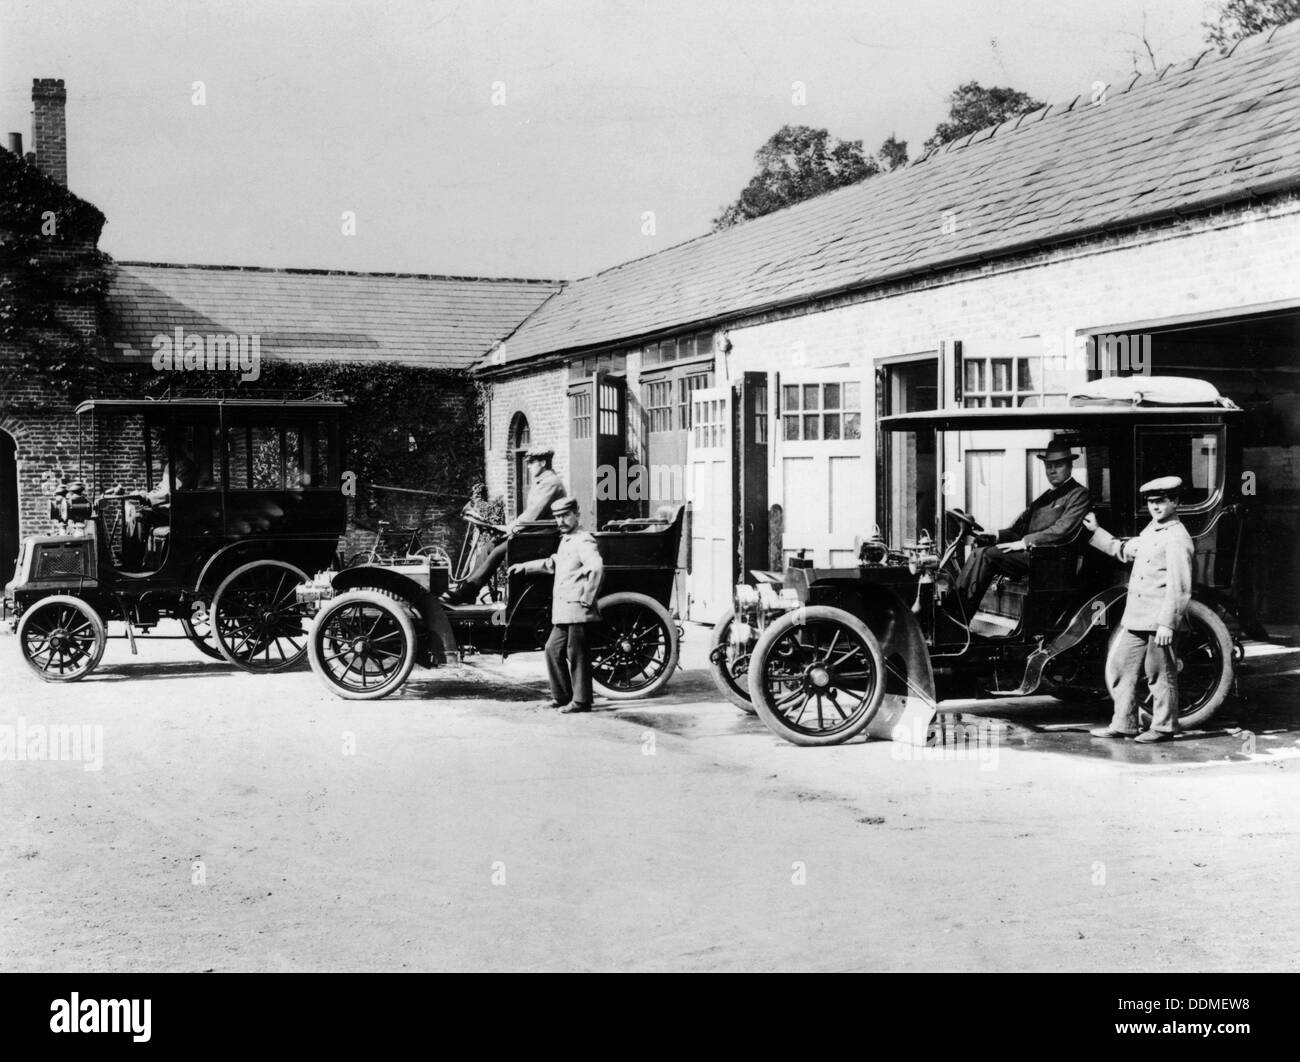 Cars parked at Lord Northcliffe's stable. - Stock Image